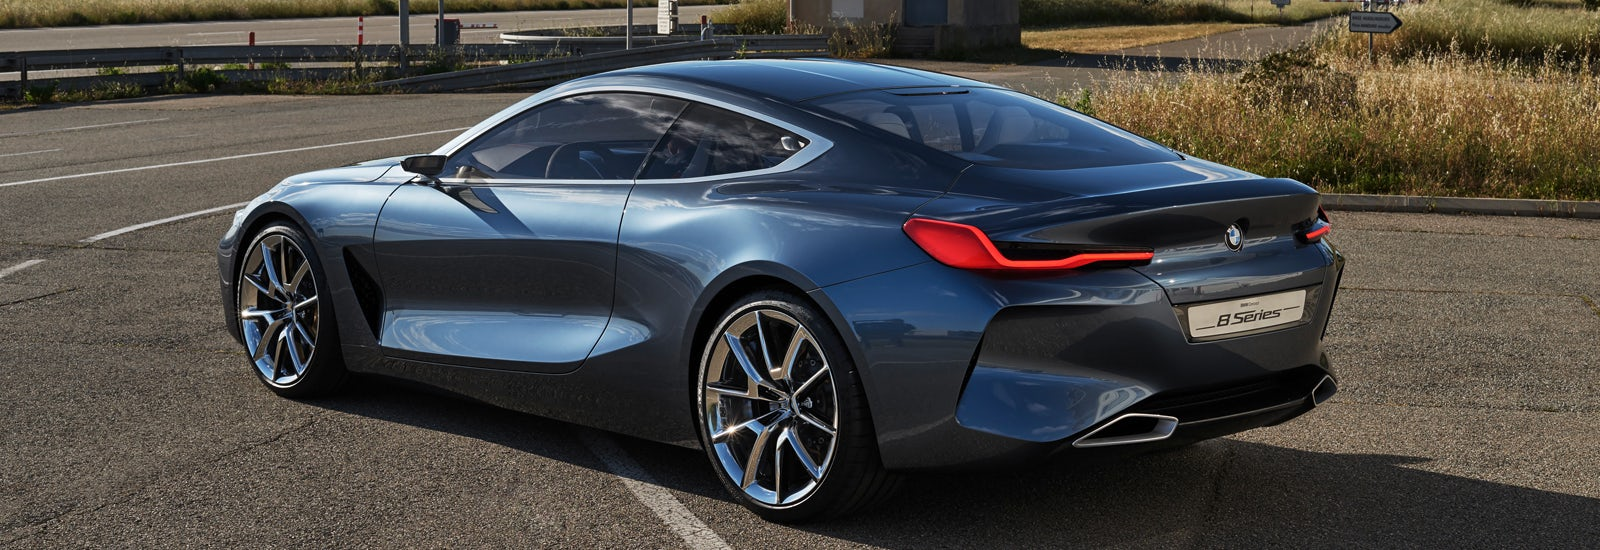 new bmw 8 series price specs release date carwow. Black Bedroom Furniture Sets. Home Design Ideas